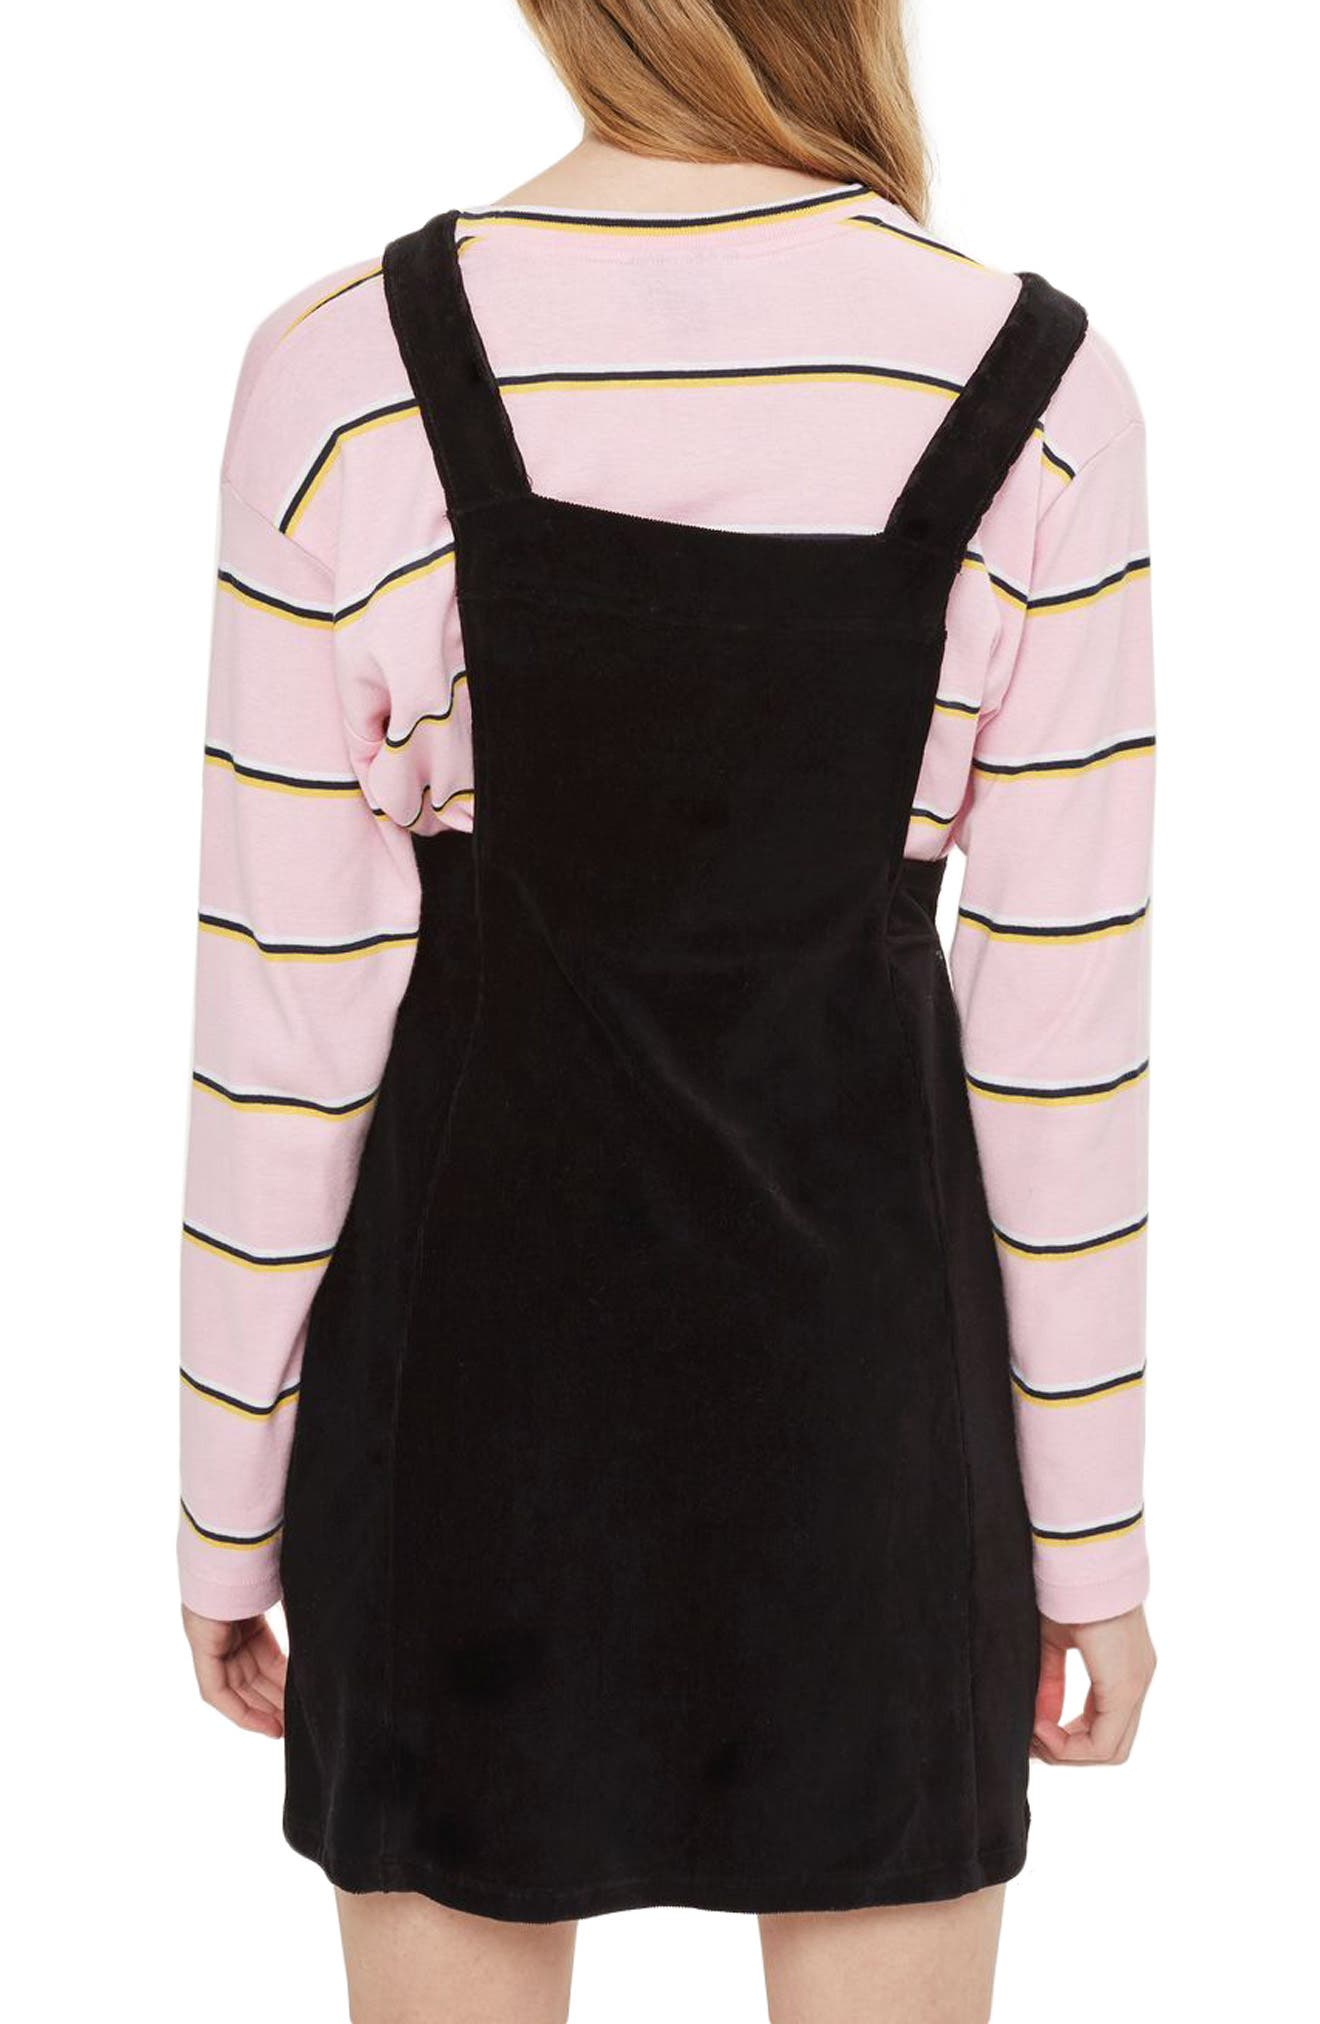 Corduroy Pinafore Dress,                             Alternate thumbnail 2, color,                             001